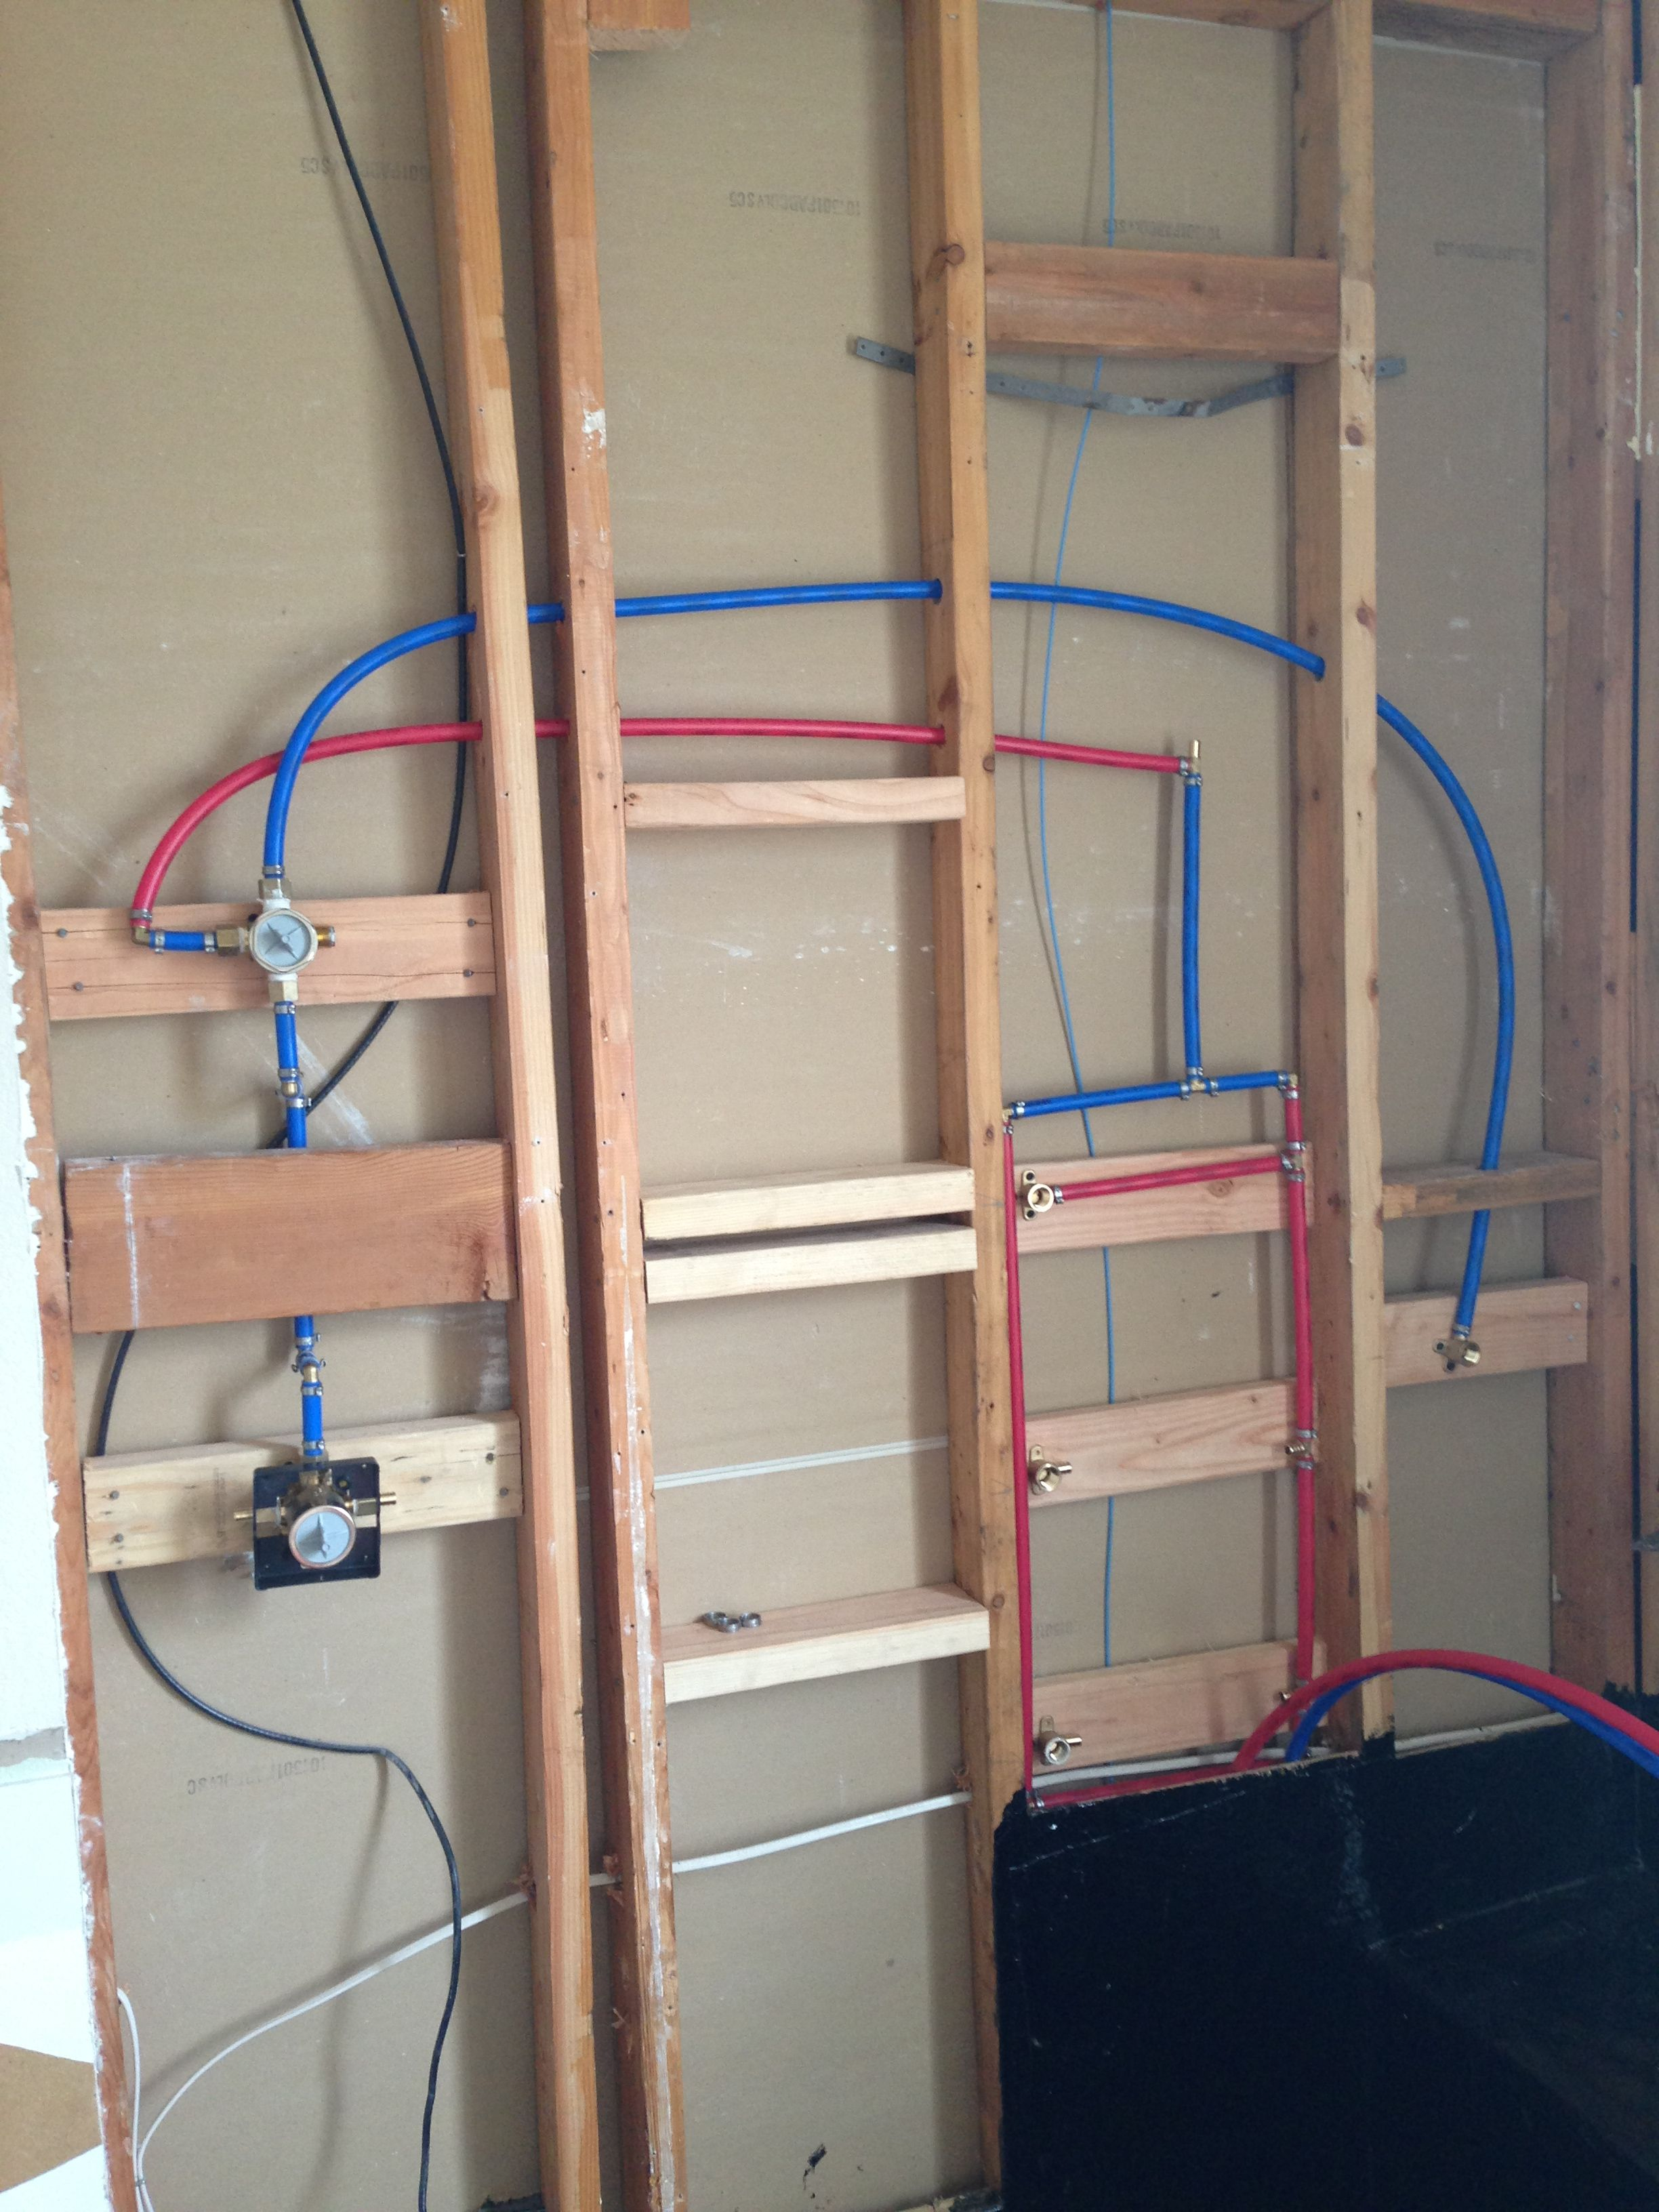 plumbers warn pex news problems cpvc corie piping pipe of plumbing